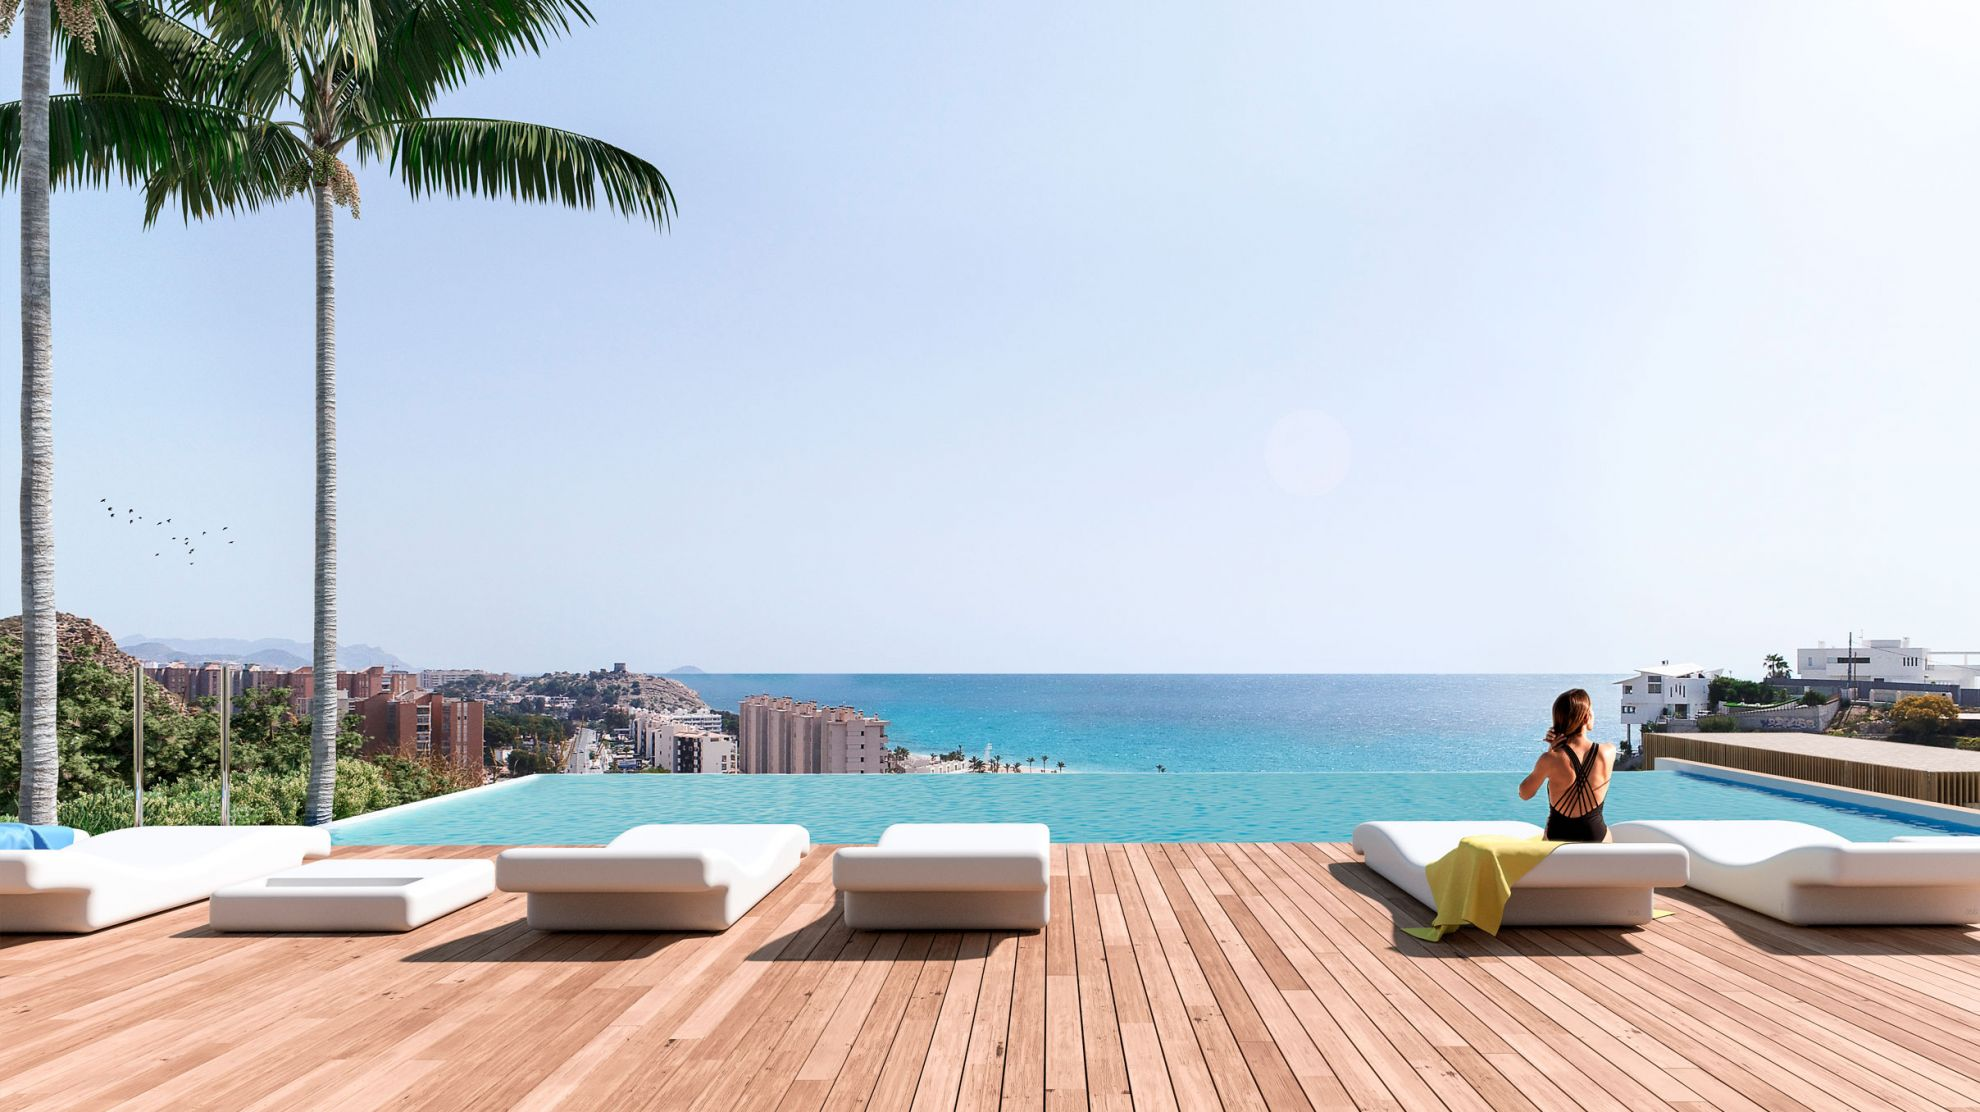 2 and 3 bedroom penthouse-style apartments with big terraces overlookg the sea. House 7 10